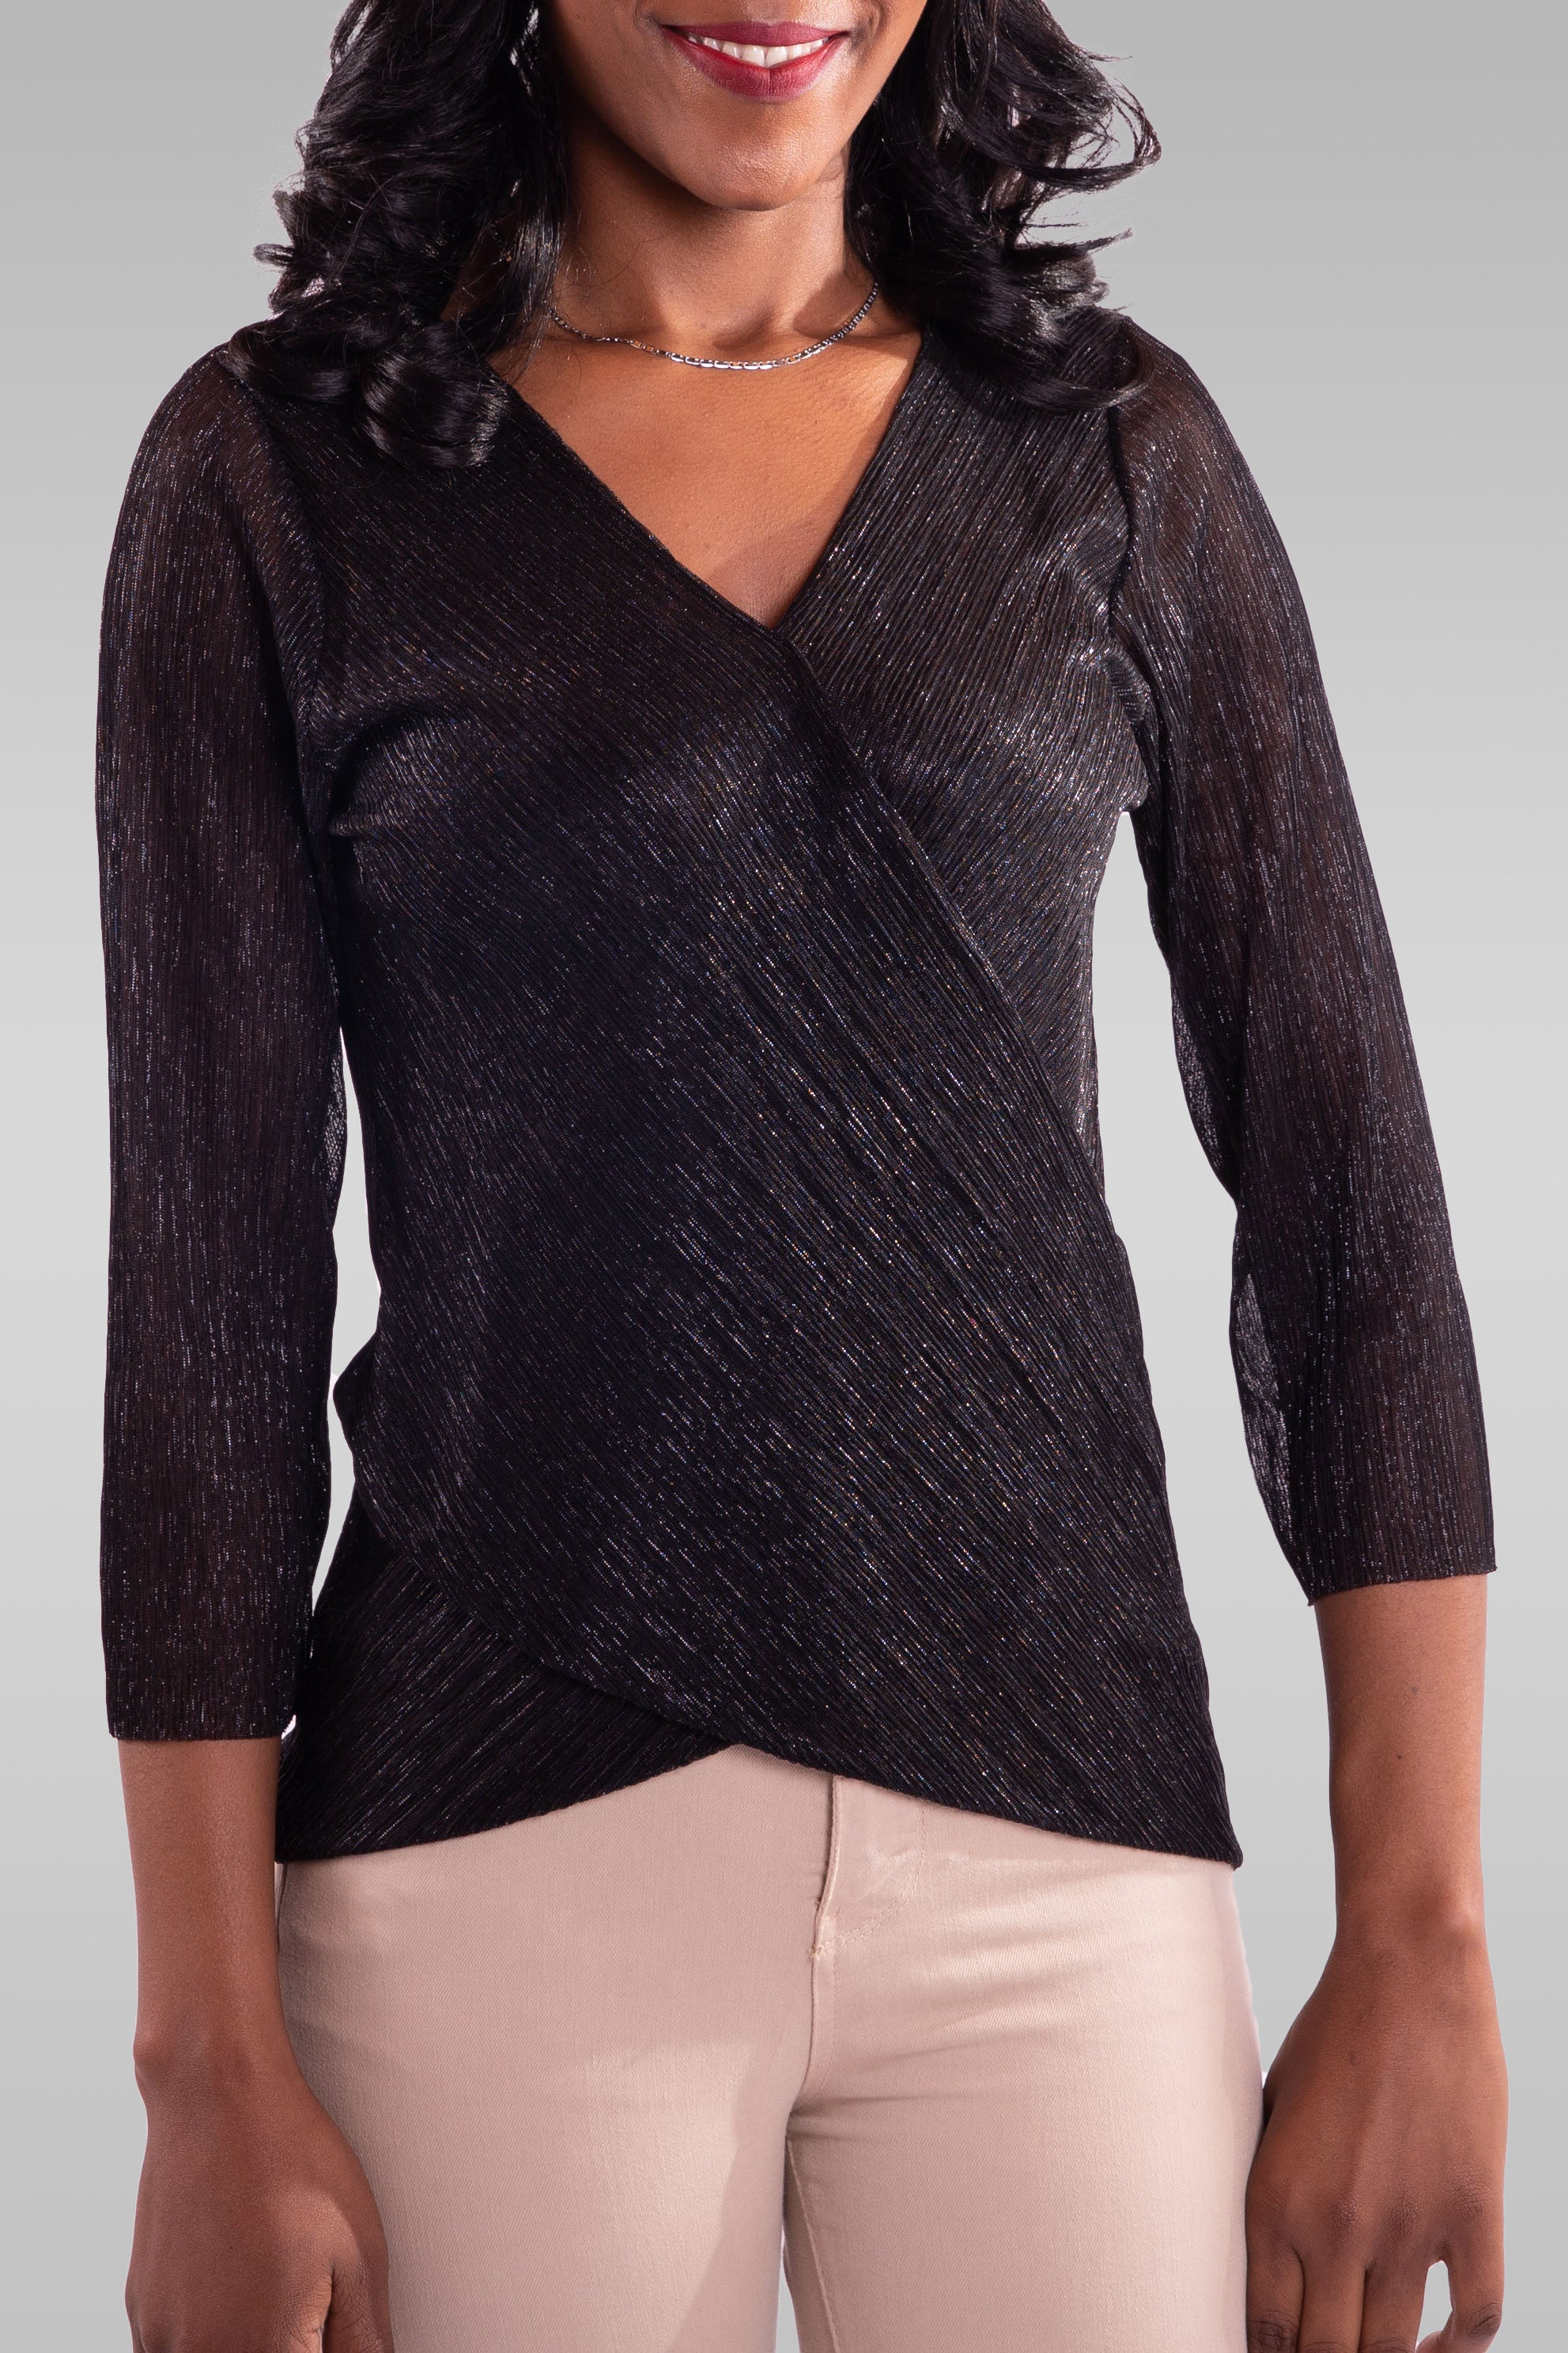 Women Long Sleeve Black Blouse - Hillmarten